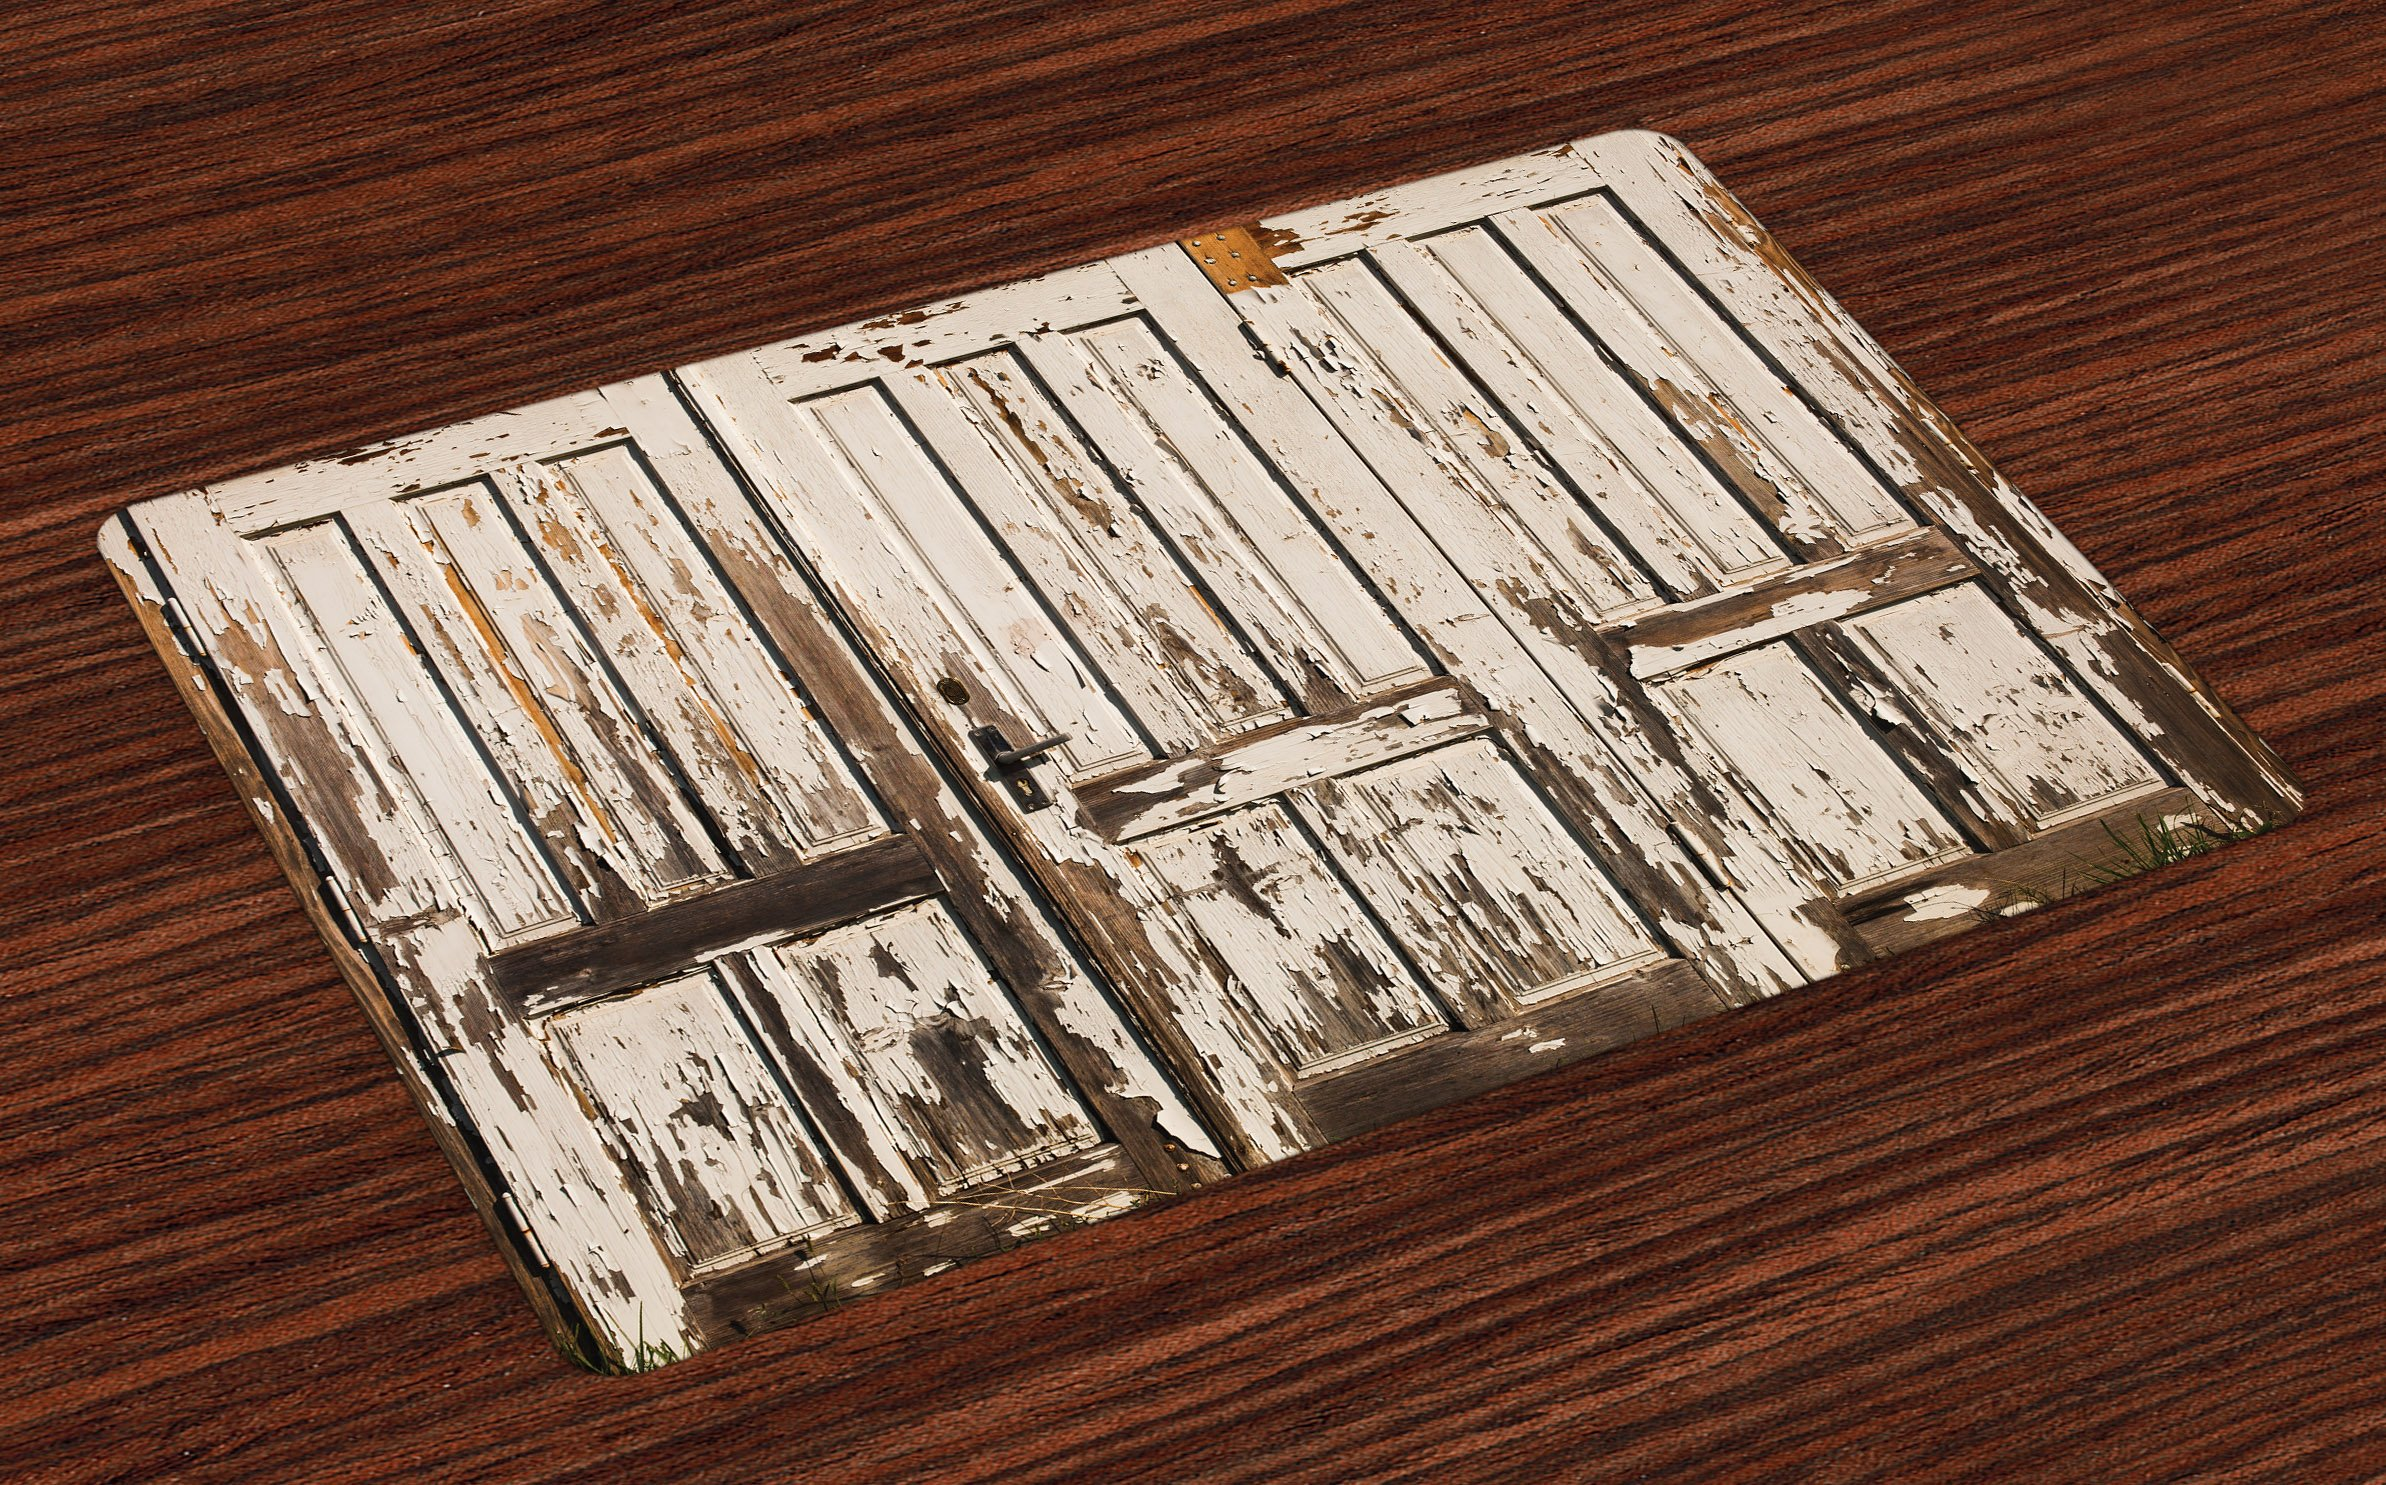 Ambesonne Rustic Place Mats Set of 4, Vintage House Entrance with Vertical Old Planks Distressed Rustic Hardwood Design, Washable Fabric Placemats for Dining Room Kitchen Table Decor, Brown White